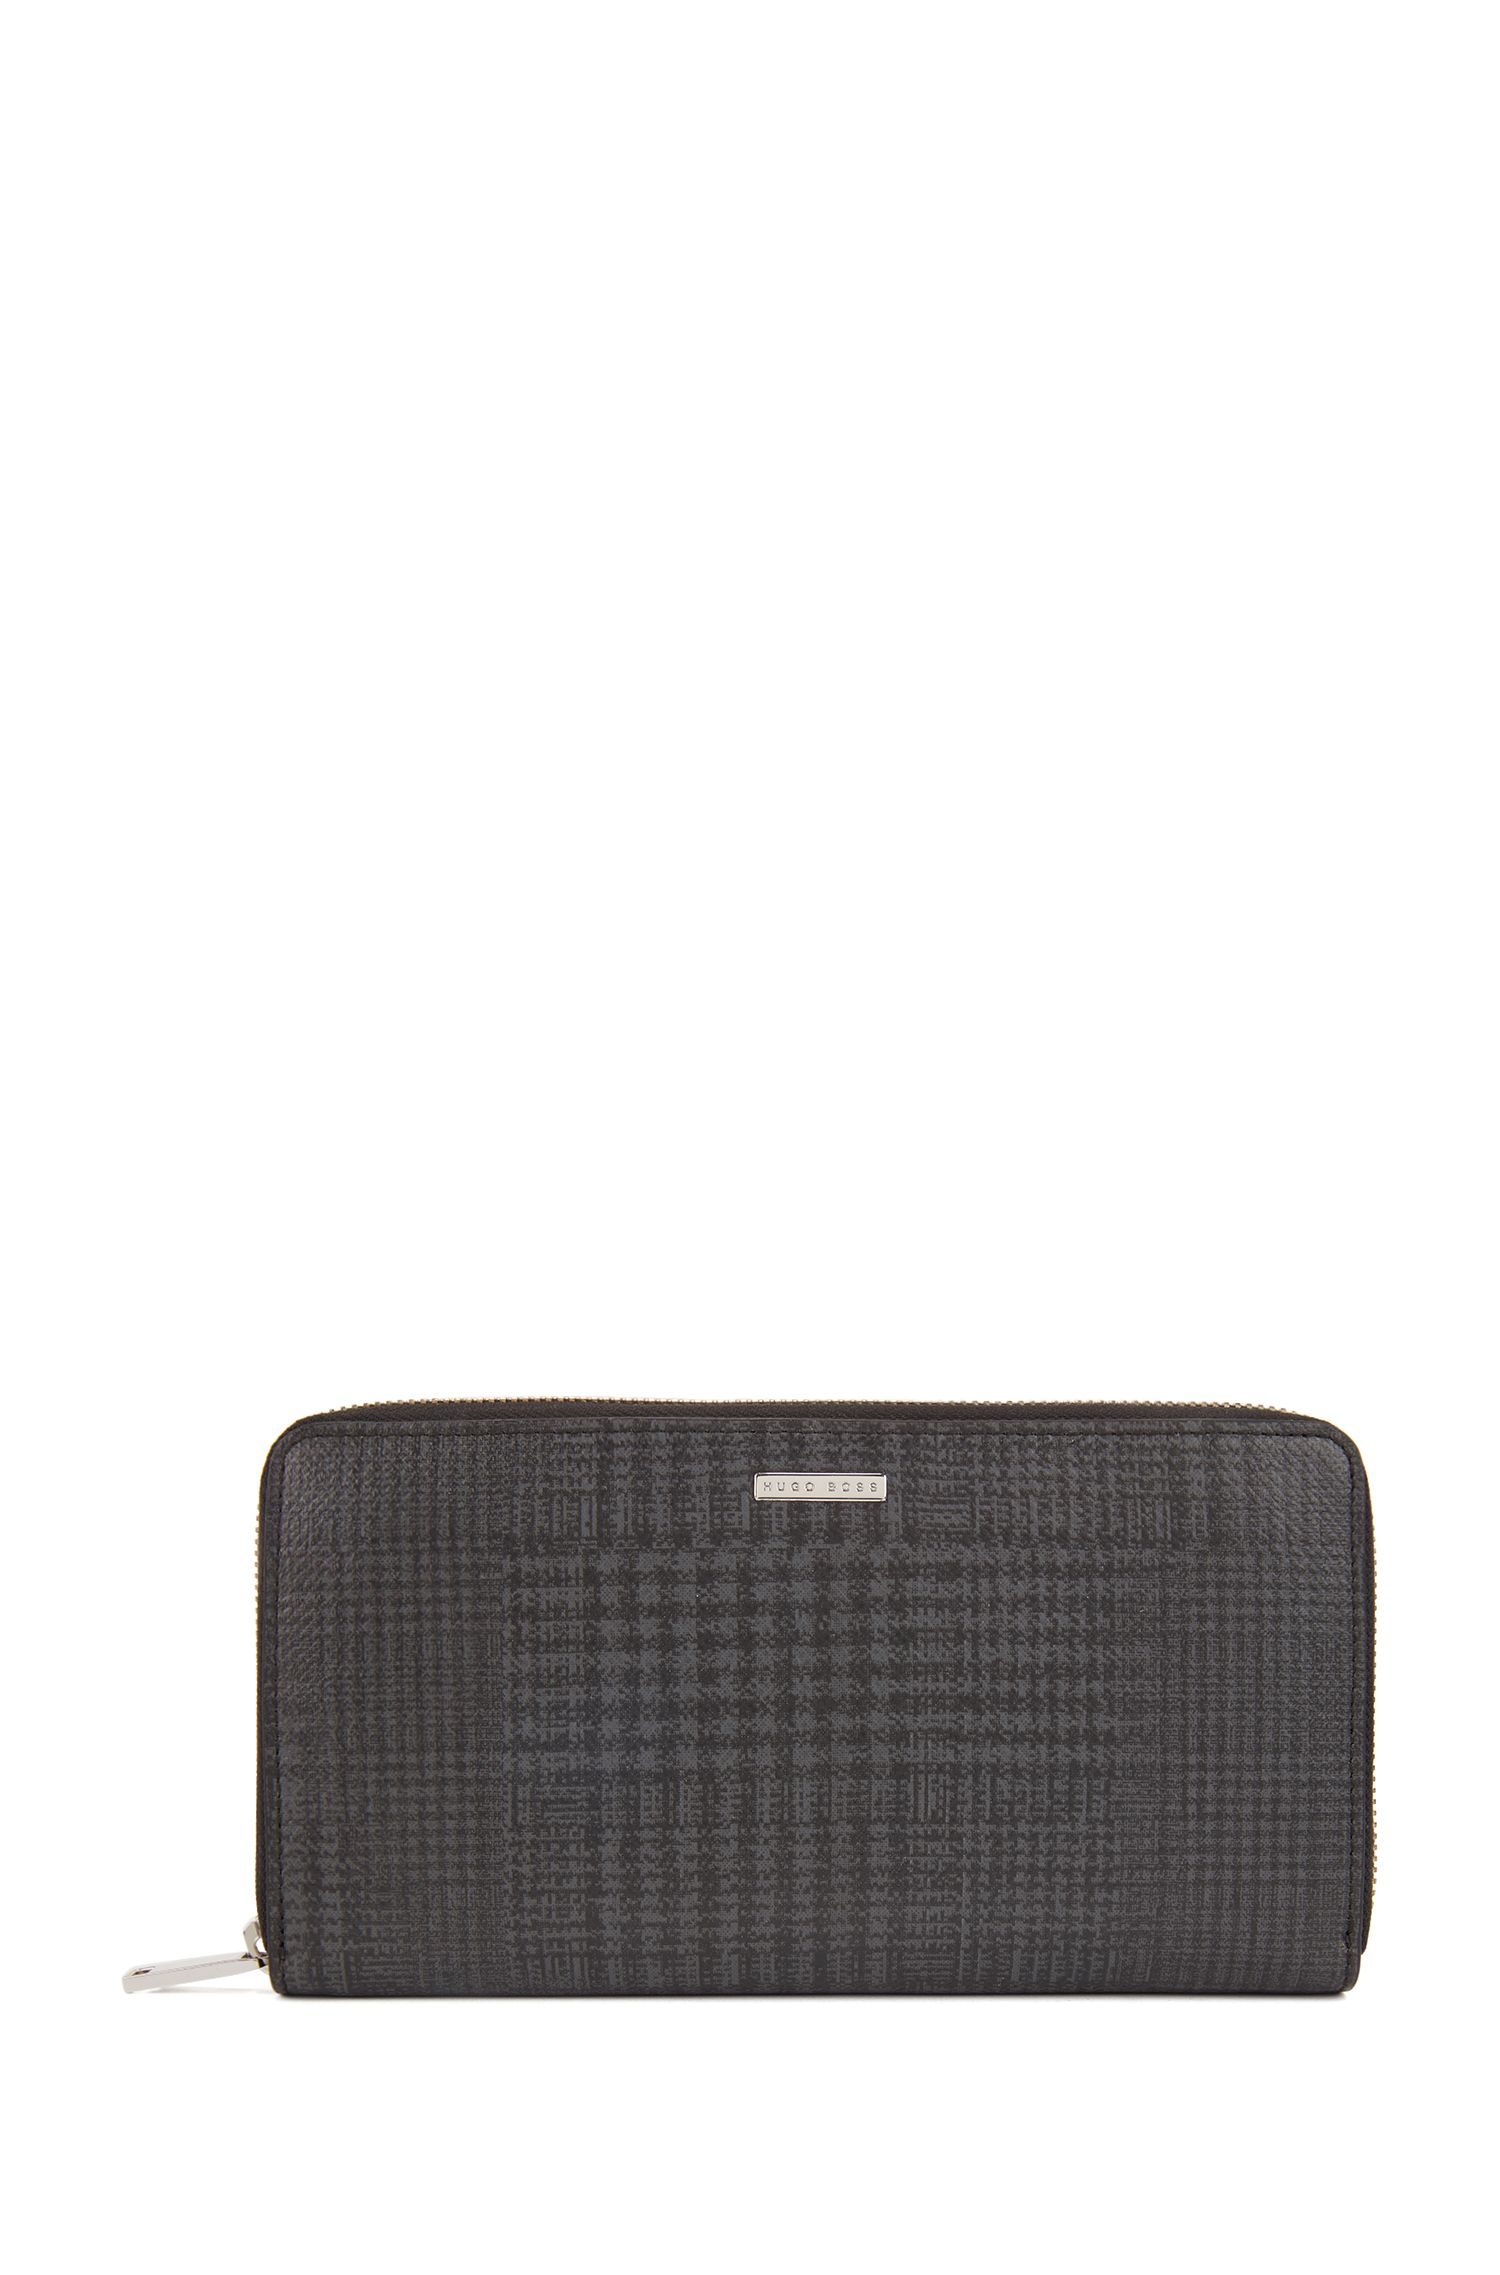 Signature Collection travel wallet in check-print calf leather, Patterned